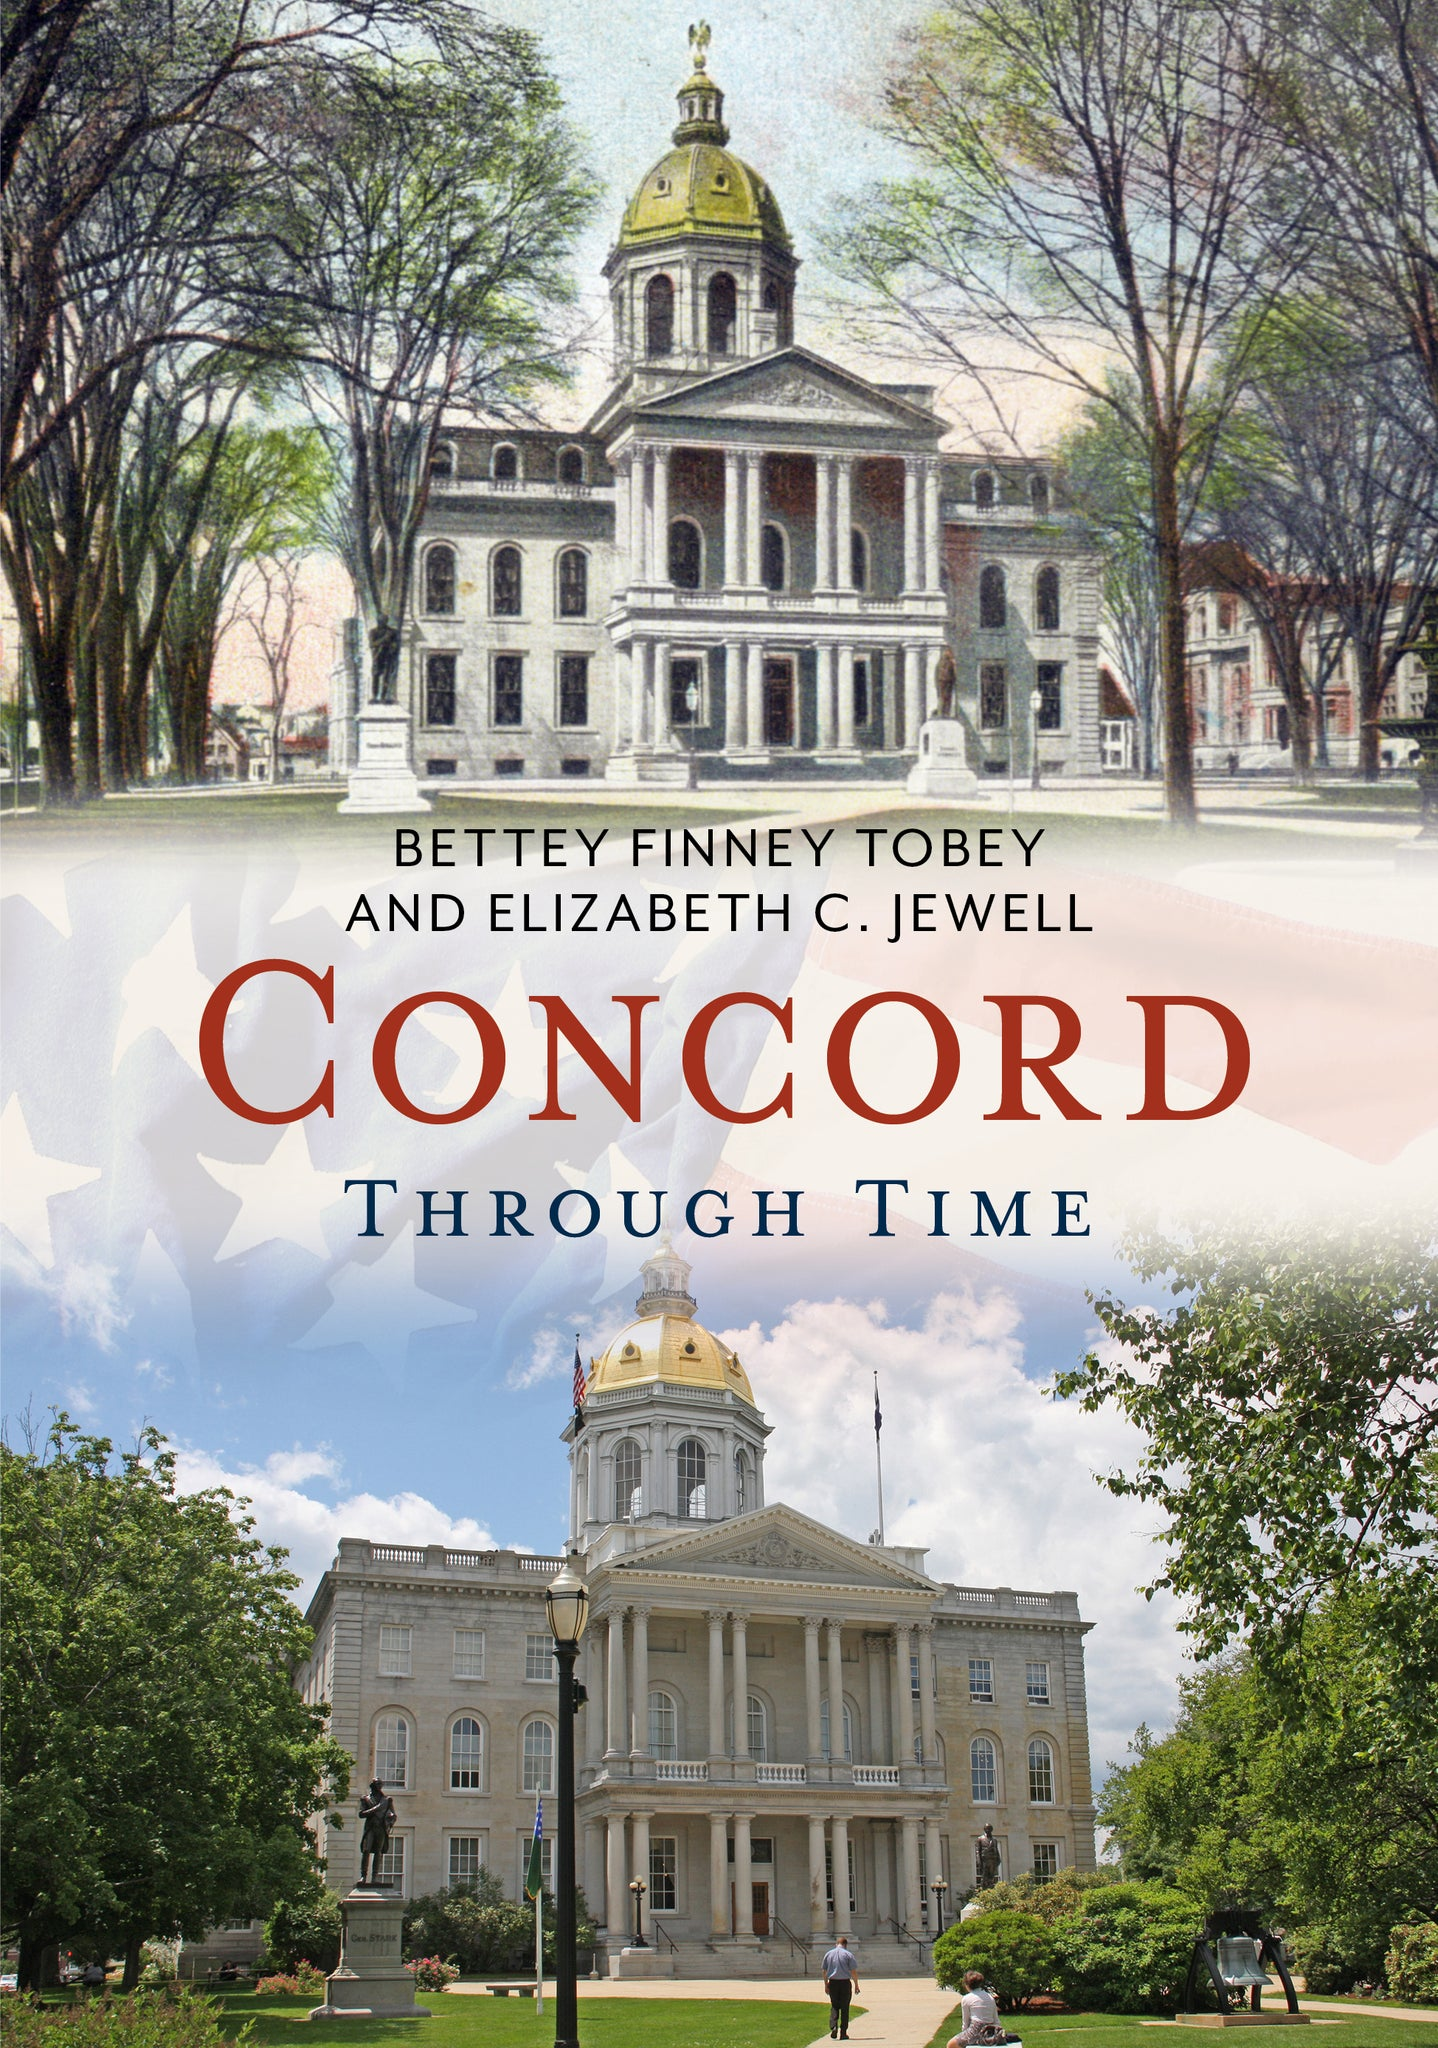 Concord Through Time - published by America Through Time